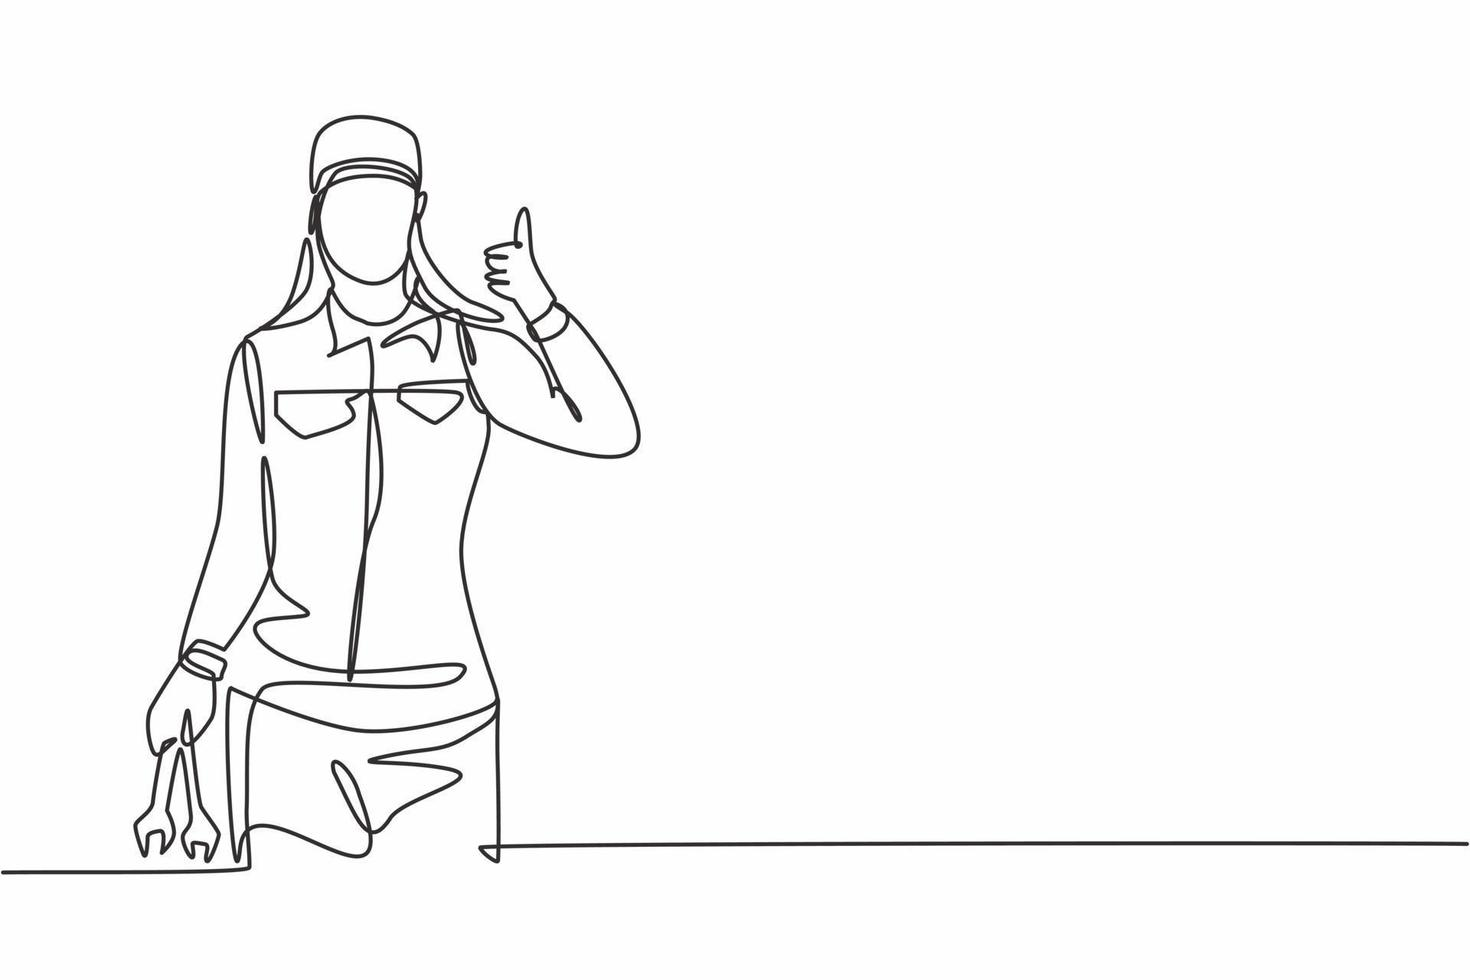 Single one line drawing of female mechanic with a thumbs-up gesture and holding the wrench works to fix a broken car engine in garage. Modern continuous line draw design graphic vector illustration